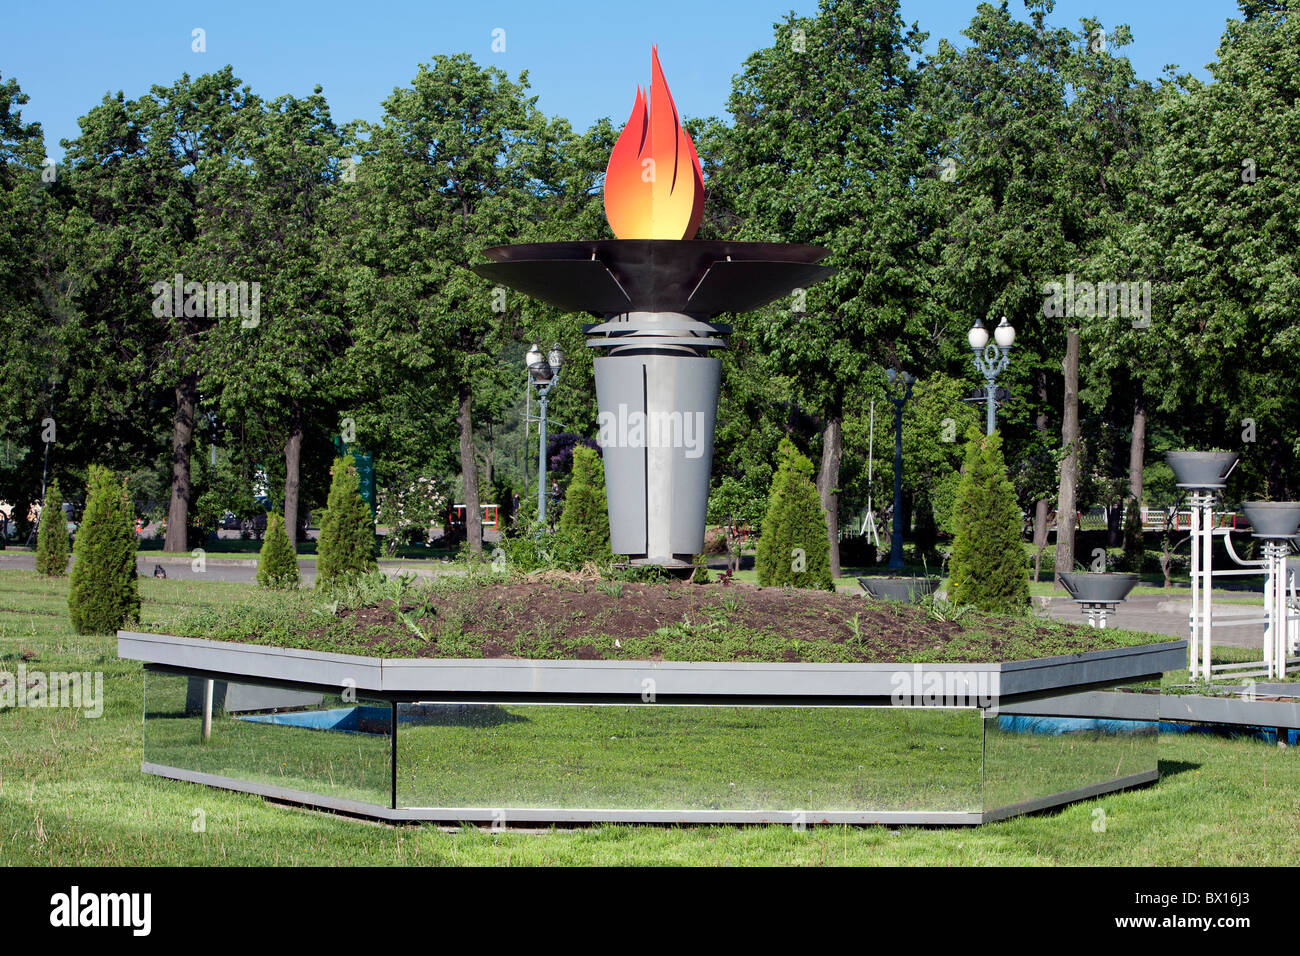 Olympic Flame outside Luzhniki Stadium (chief venue for the 1980 Summer Olympics) in Moscow, Russia - Stock Image